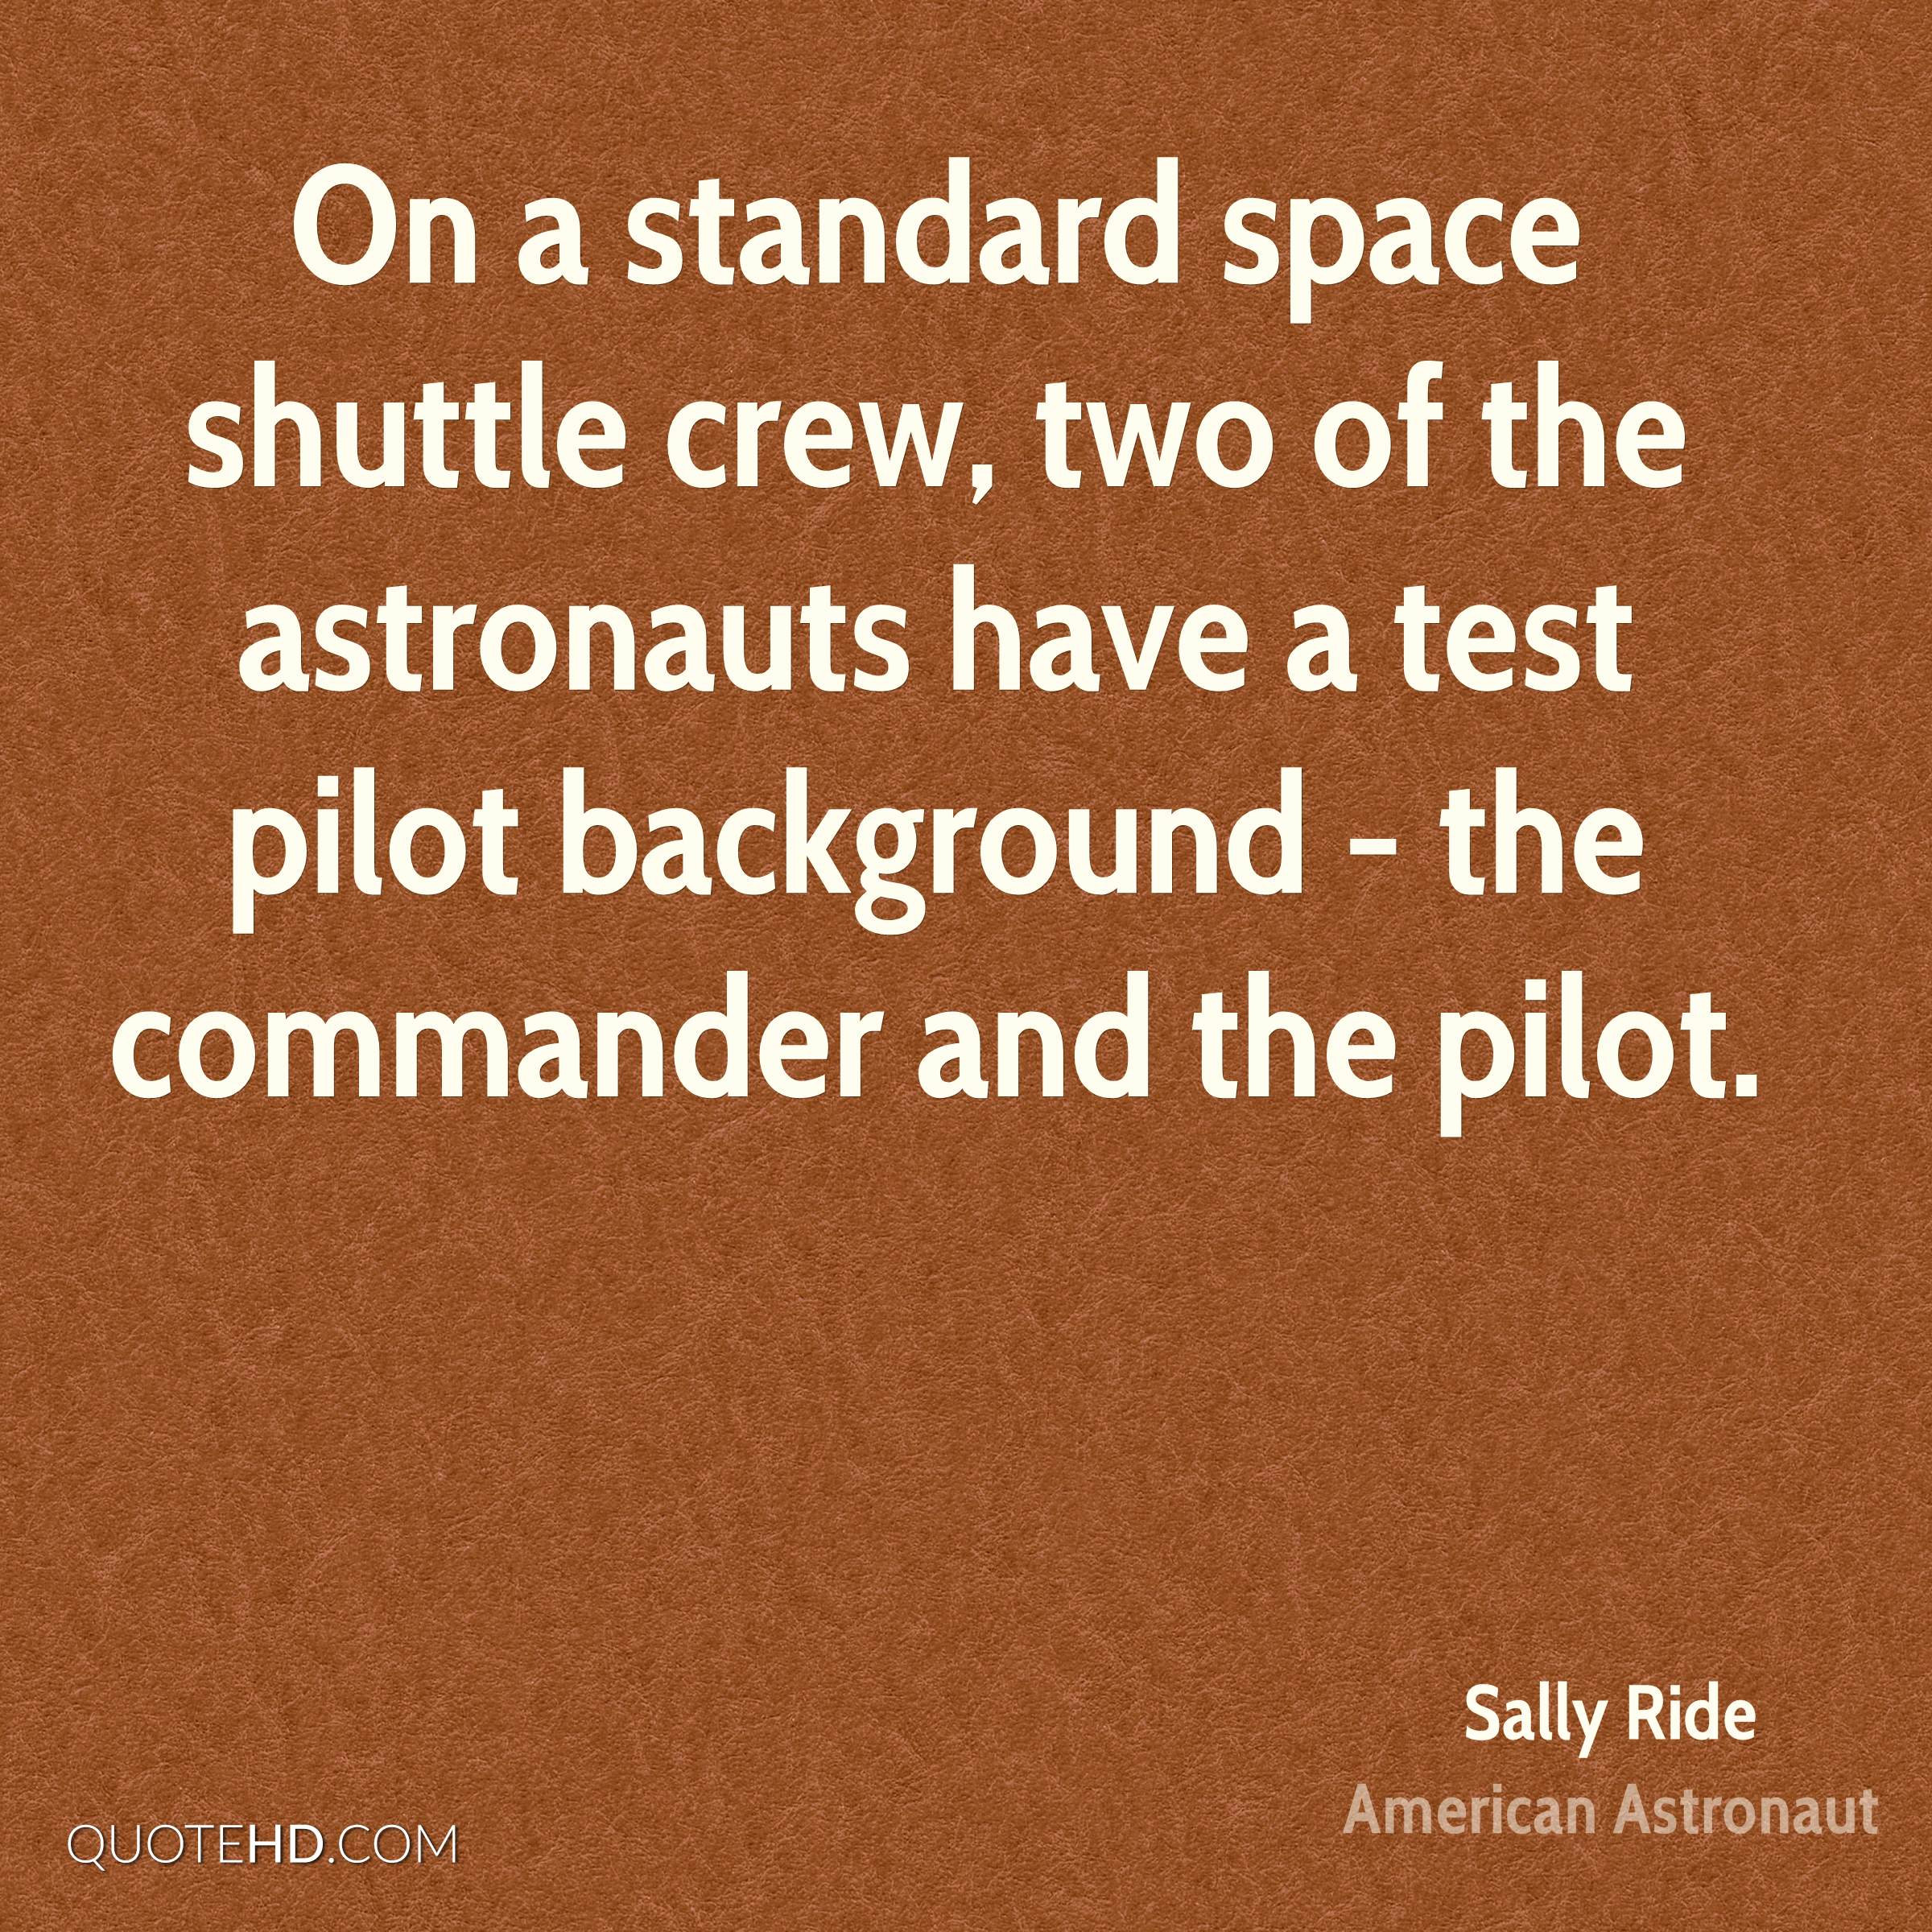 On a standard space shuttle crew, two of the astronauts have a test pilot background - the commander and the pilot.